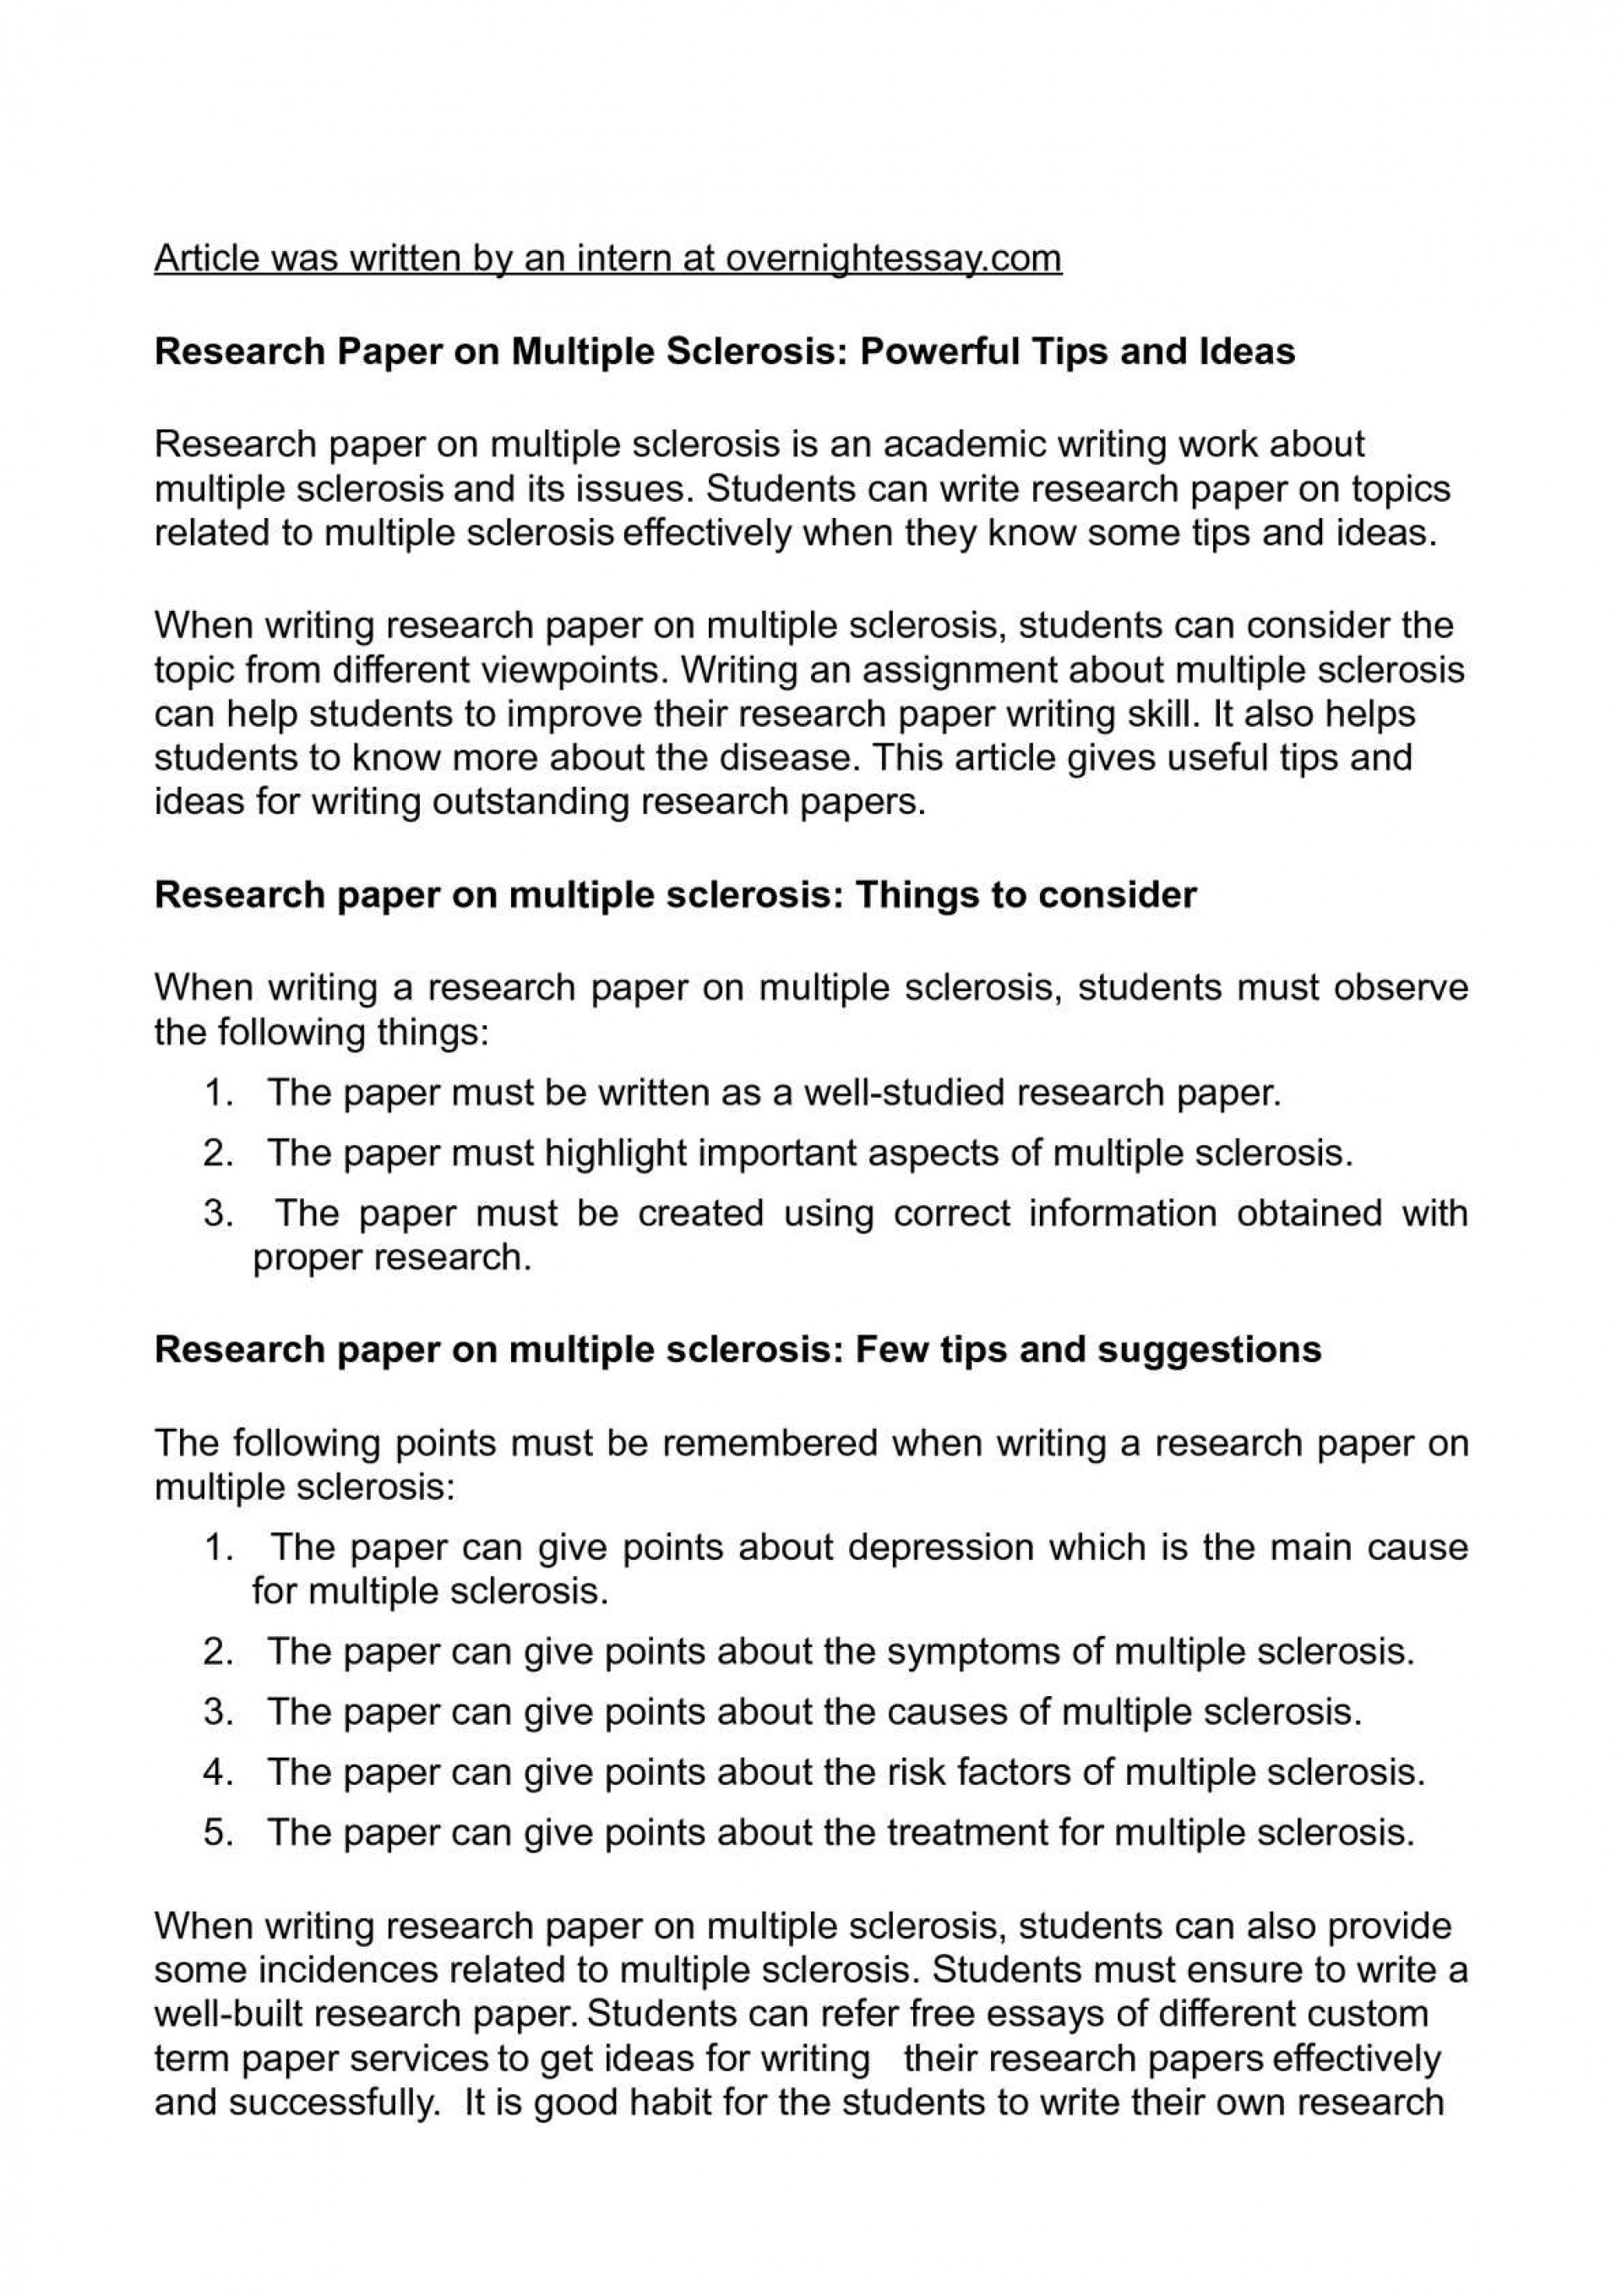 015 Research Paper How To Write Breathtaking A Hook Reference Conclusion For Pdf 1920